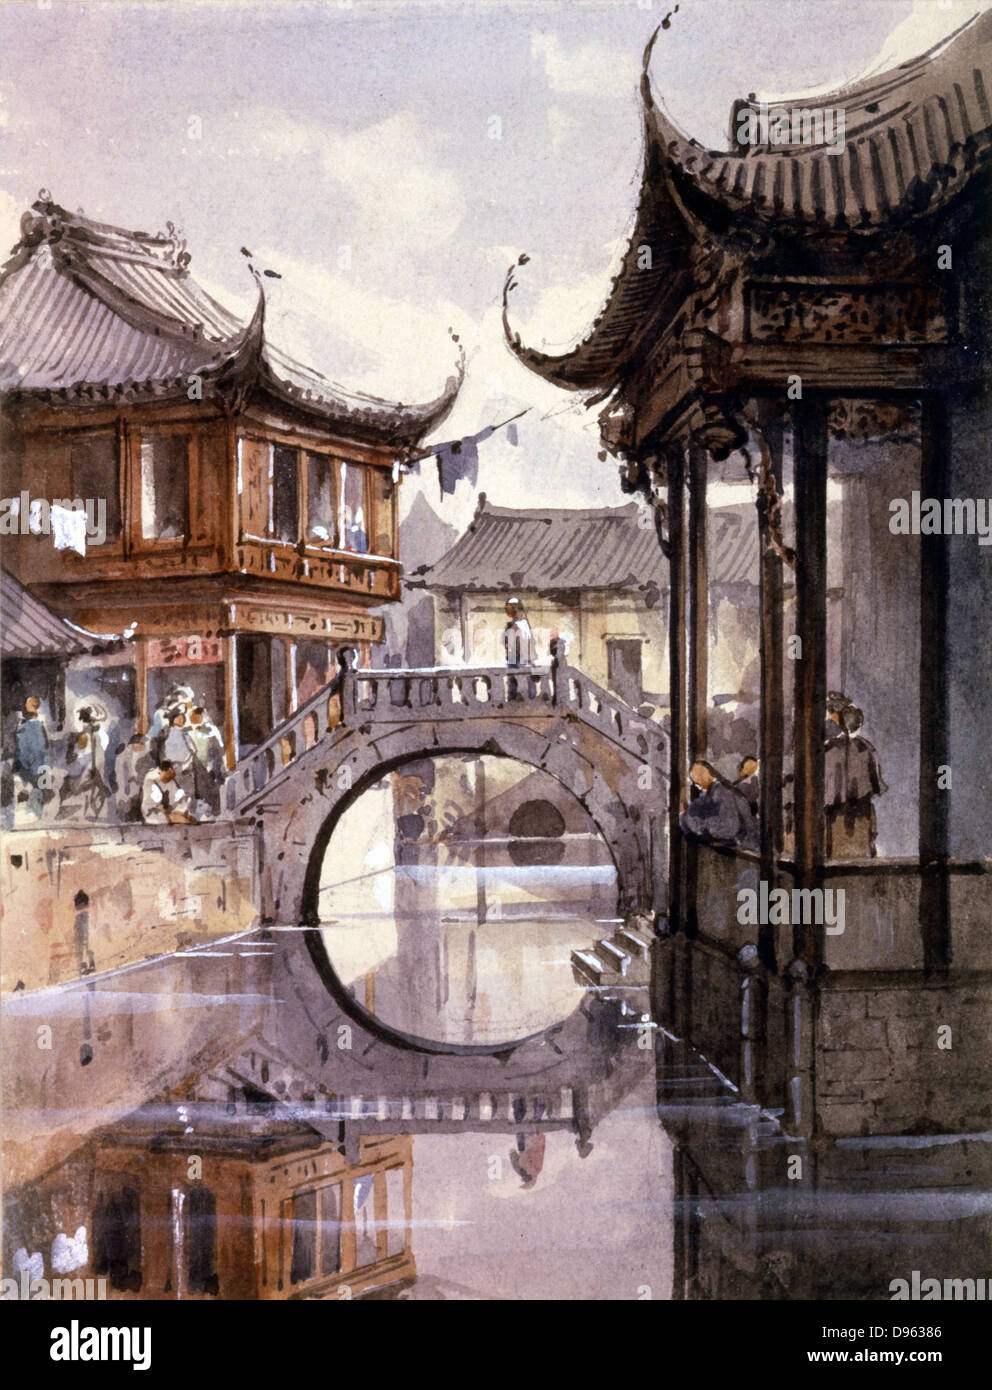 Shanghai c1865. View of canal lined with buildings.  Jean Henri Zuber (1844-1909) French artist. Watercolour. - Stock Image